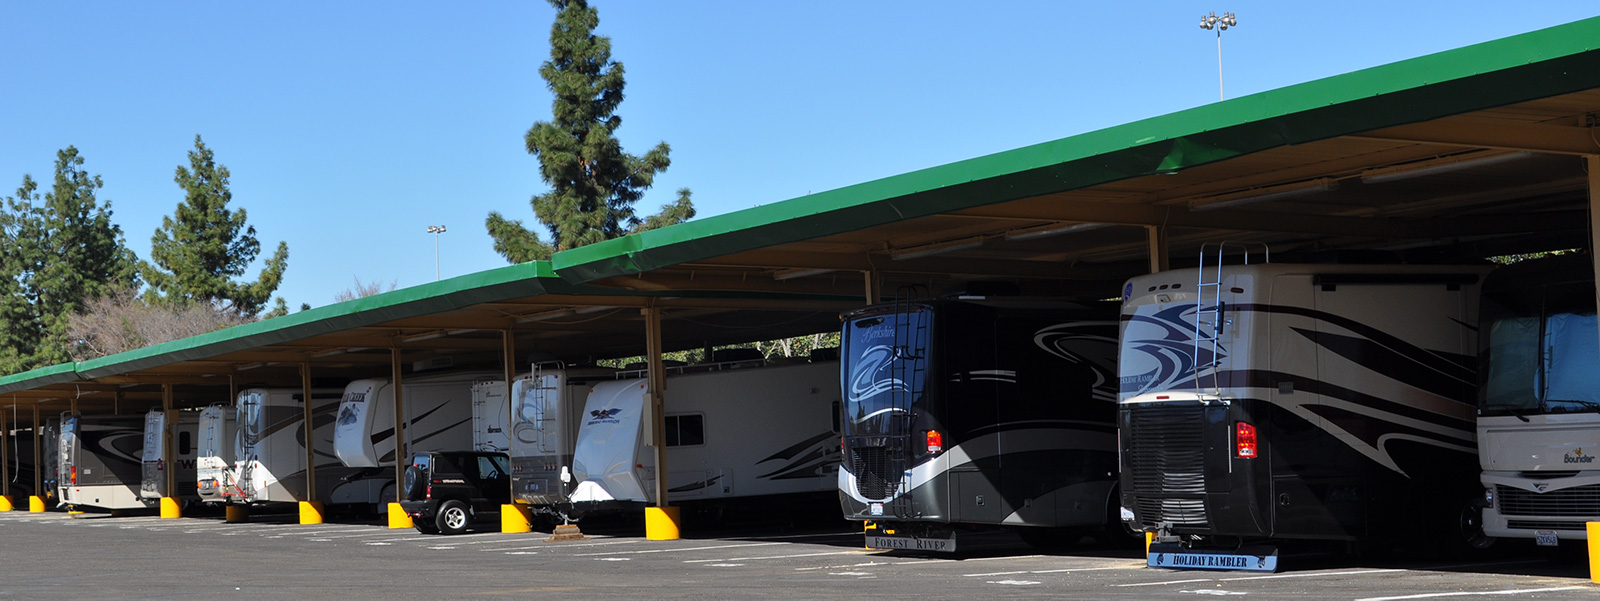 RV and Boat Storage at Fairplex